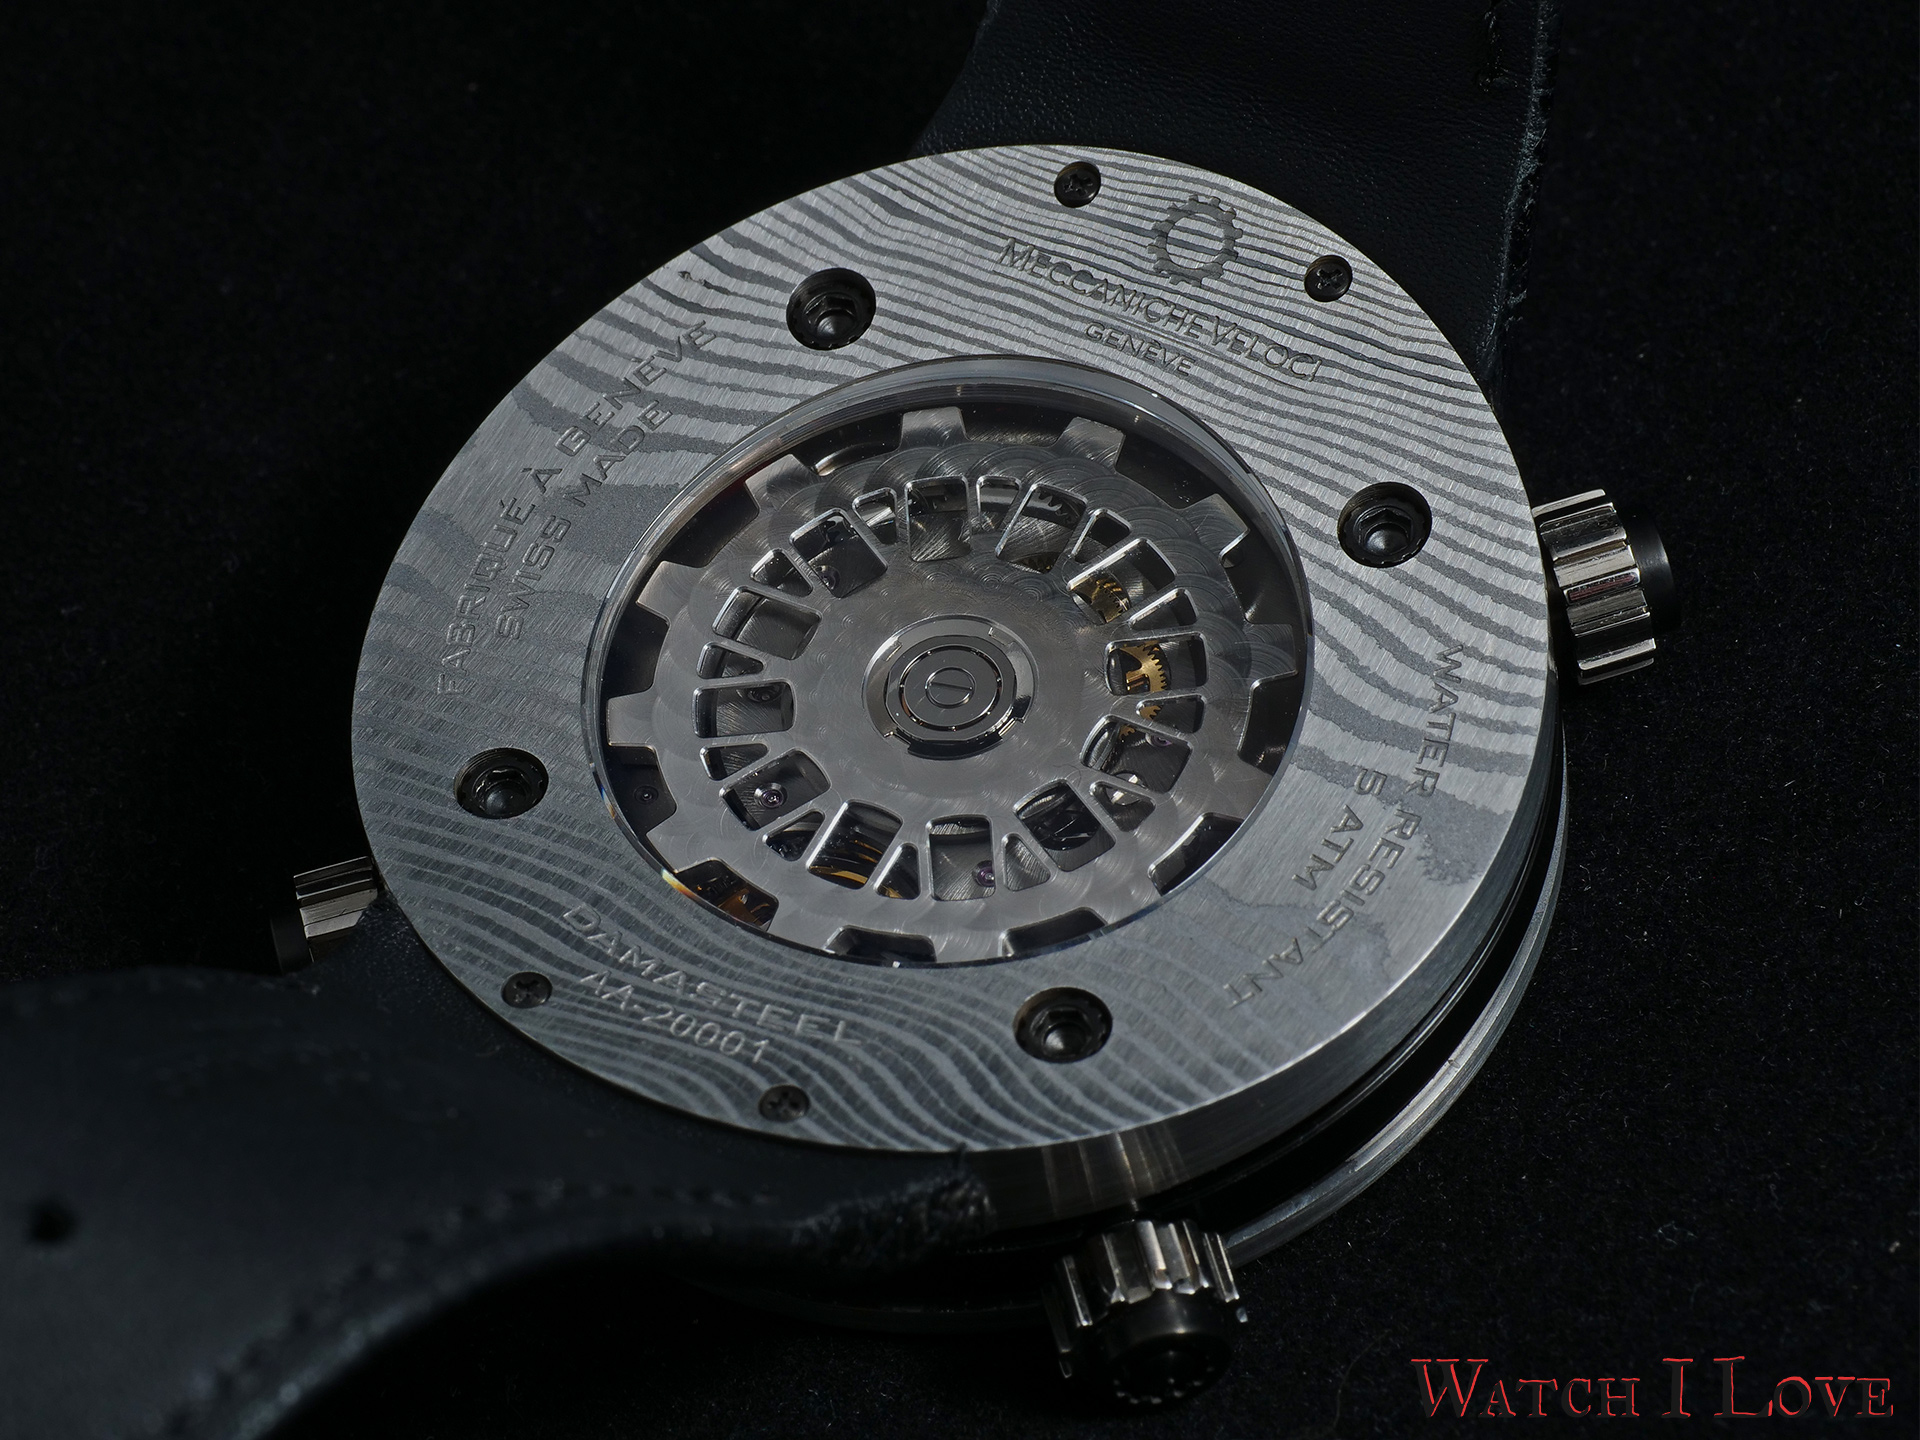 Icon Damascus is driven by the calibre MV 8802 developed in-house, which is visible through the open caseback.